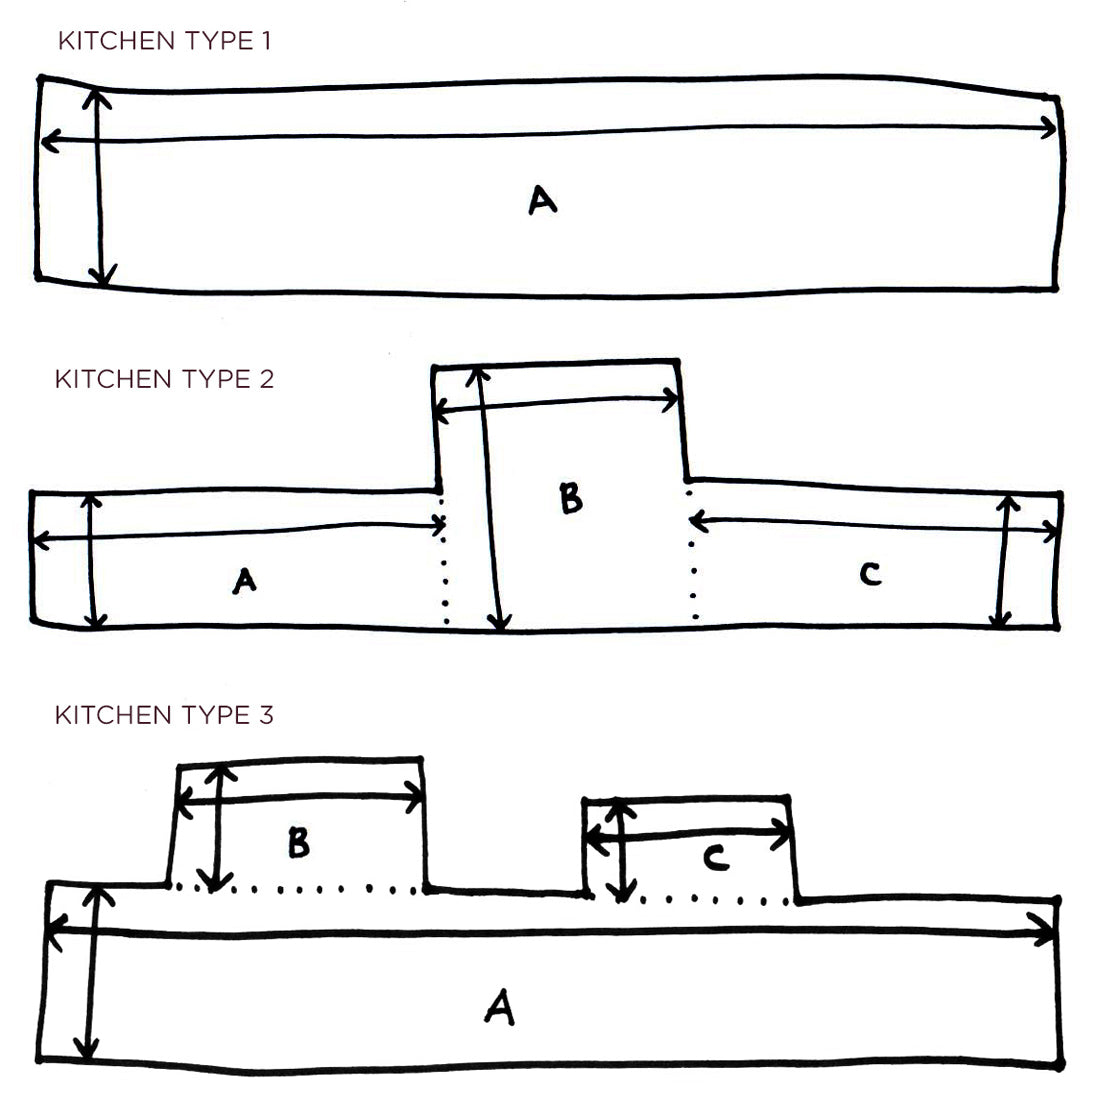 HowToMeasure-01 How to Measure Your Kitchen Backsplash All   Kitchen-Drawing How to Measure Your Kitchen Backsplash All   whatyoullneed How to Measure Your Kitchen Backsplash All   kitchen-types2 How to Measure Your Kitchen Backsplash All